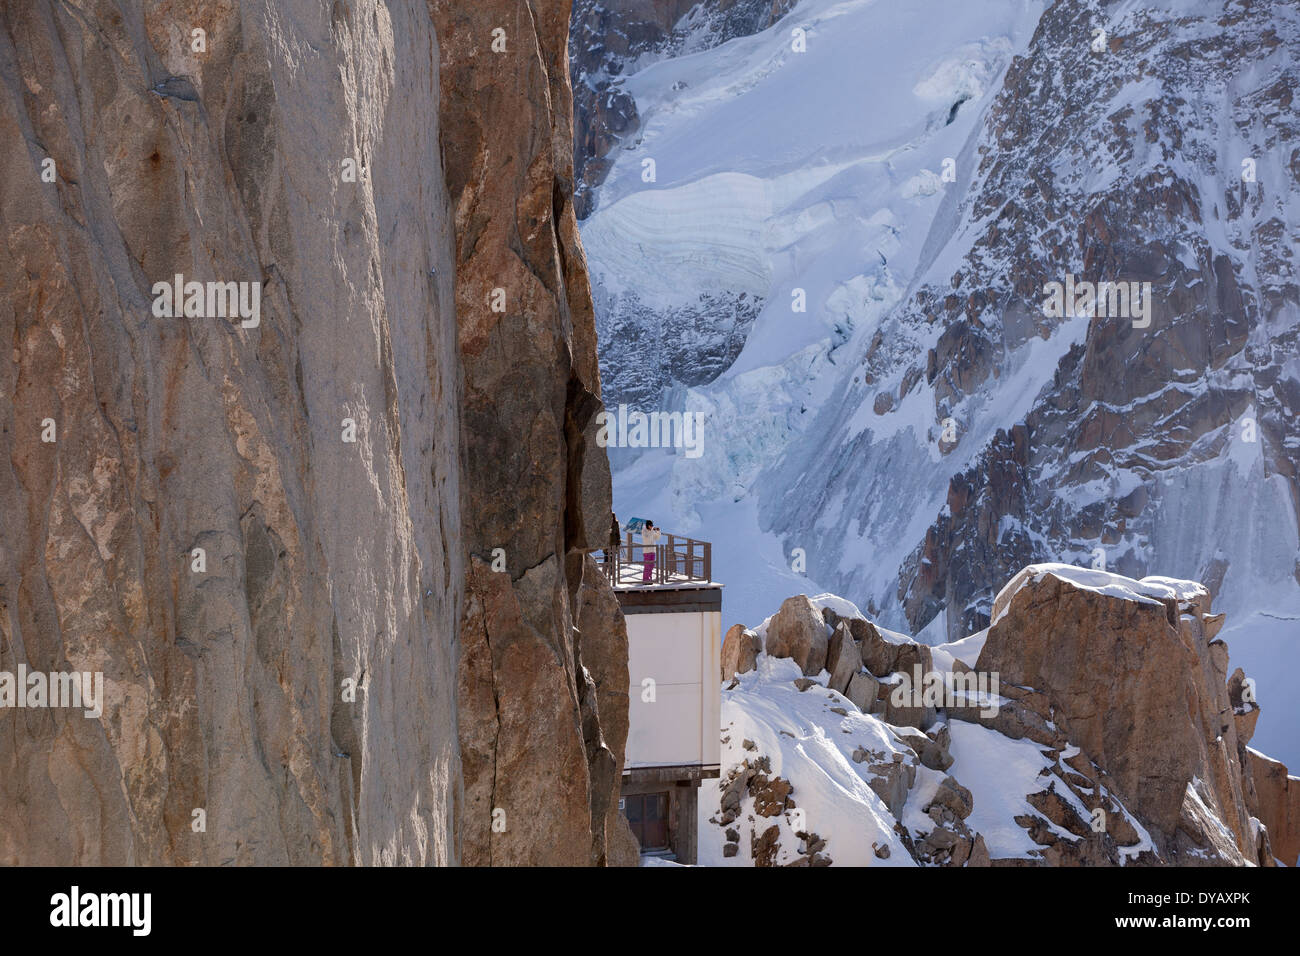 Tourists visit a lookout point at the Aiguille Du Midi (3842m) mountain top above Chamonix Mont-Blanc. - Stock Image